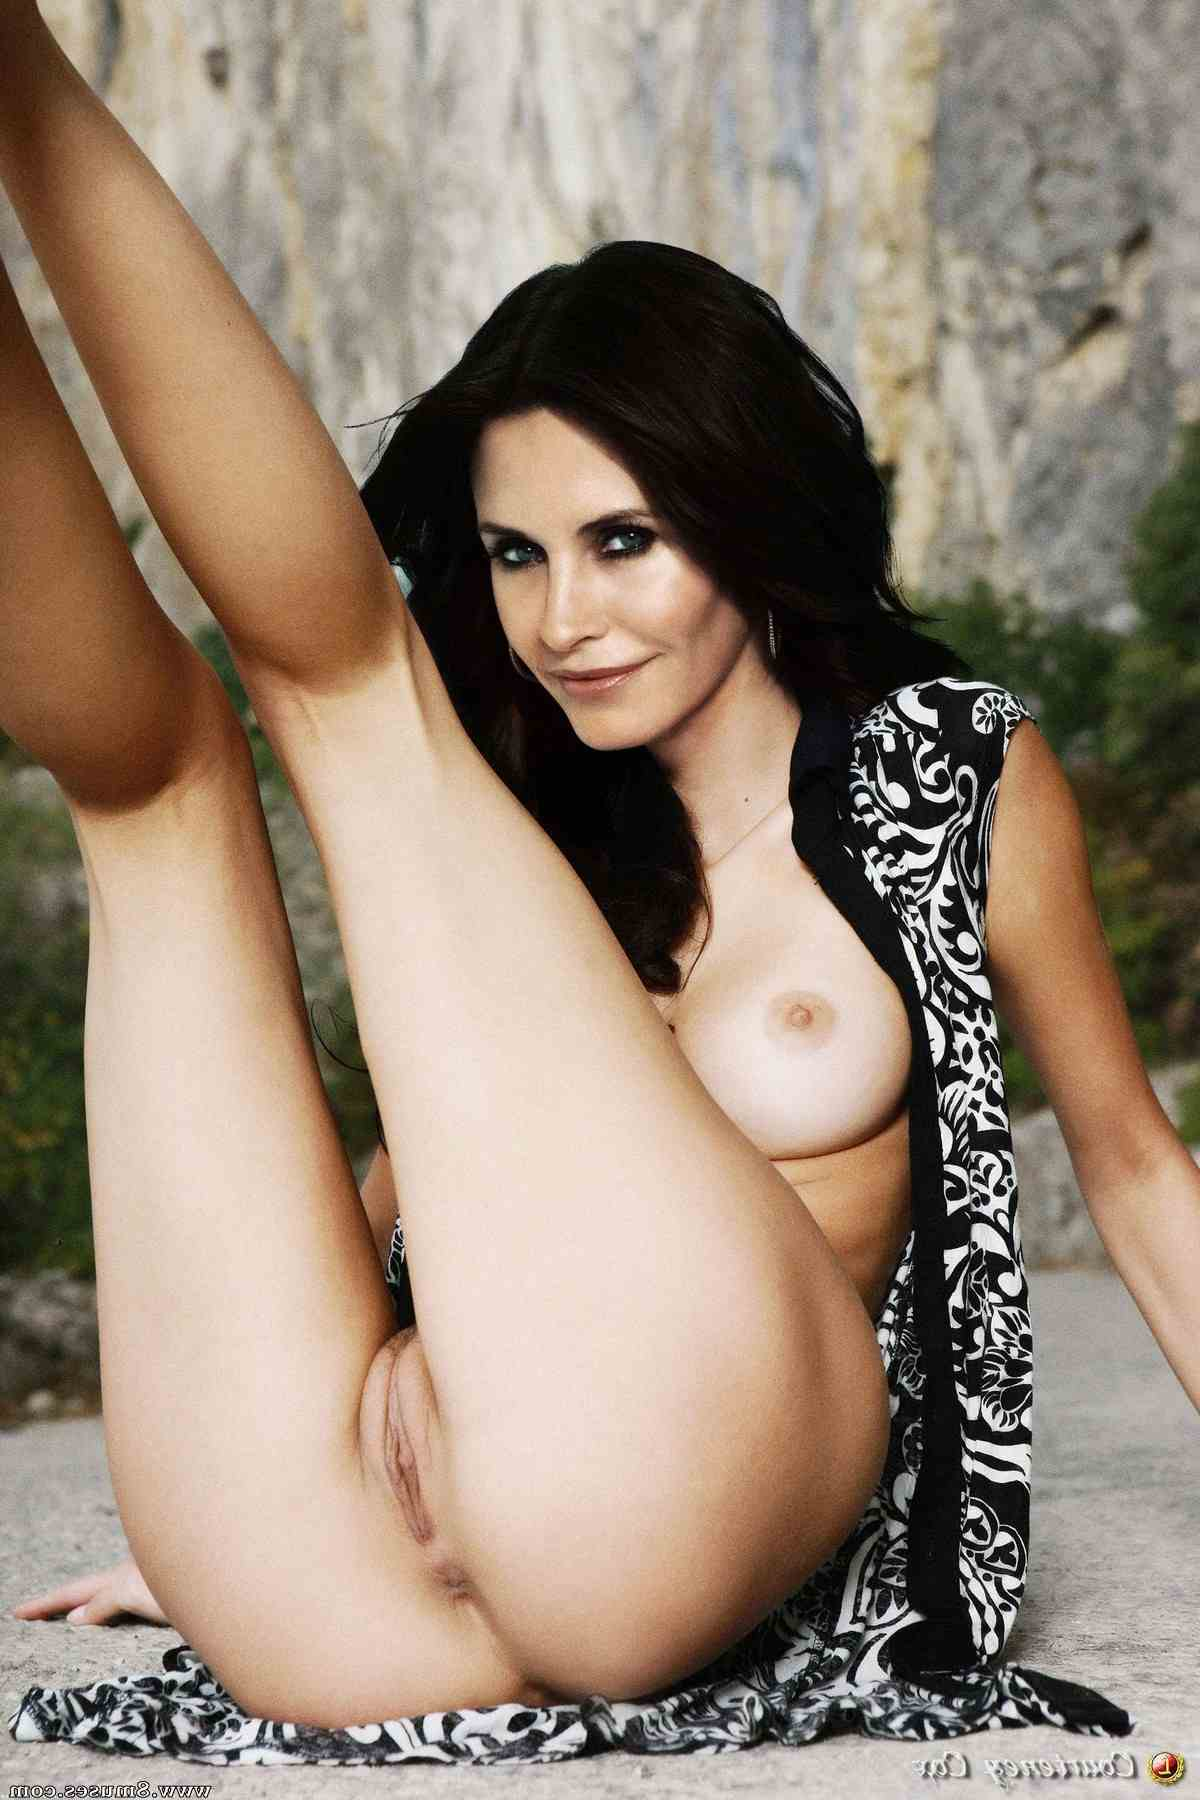 Hd porn courteney cox